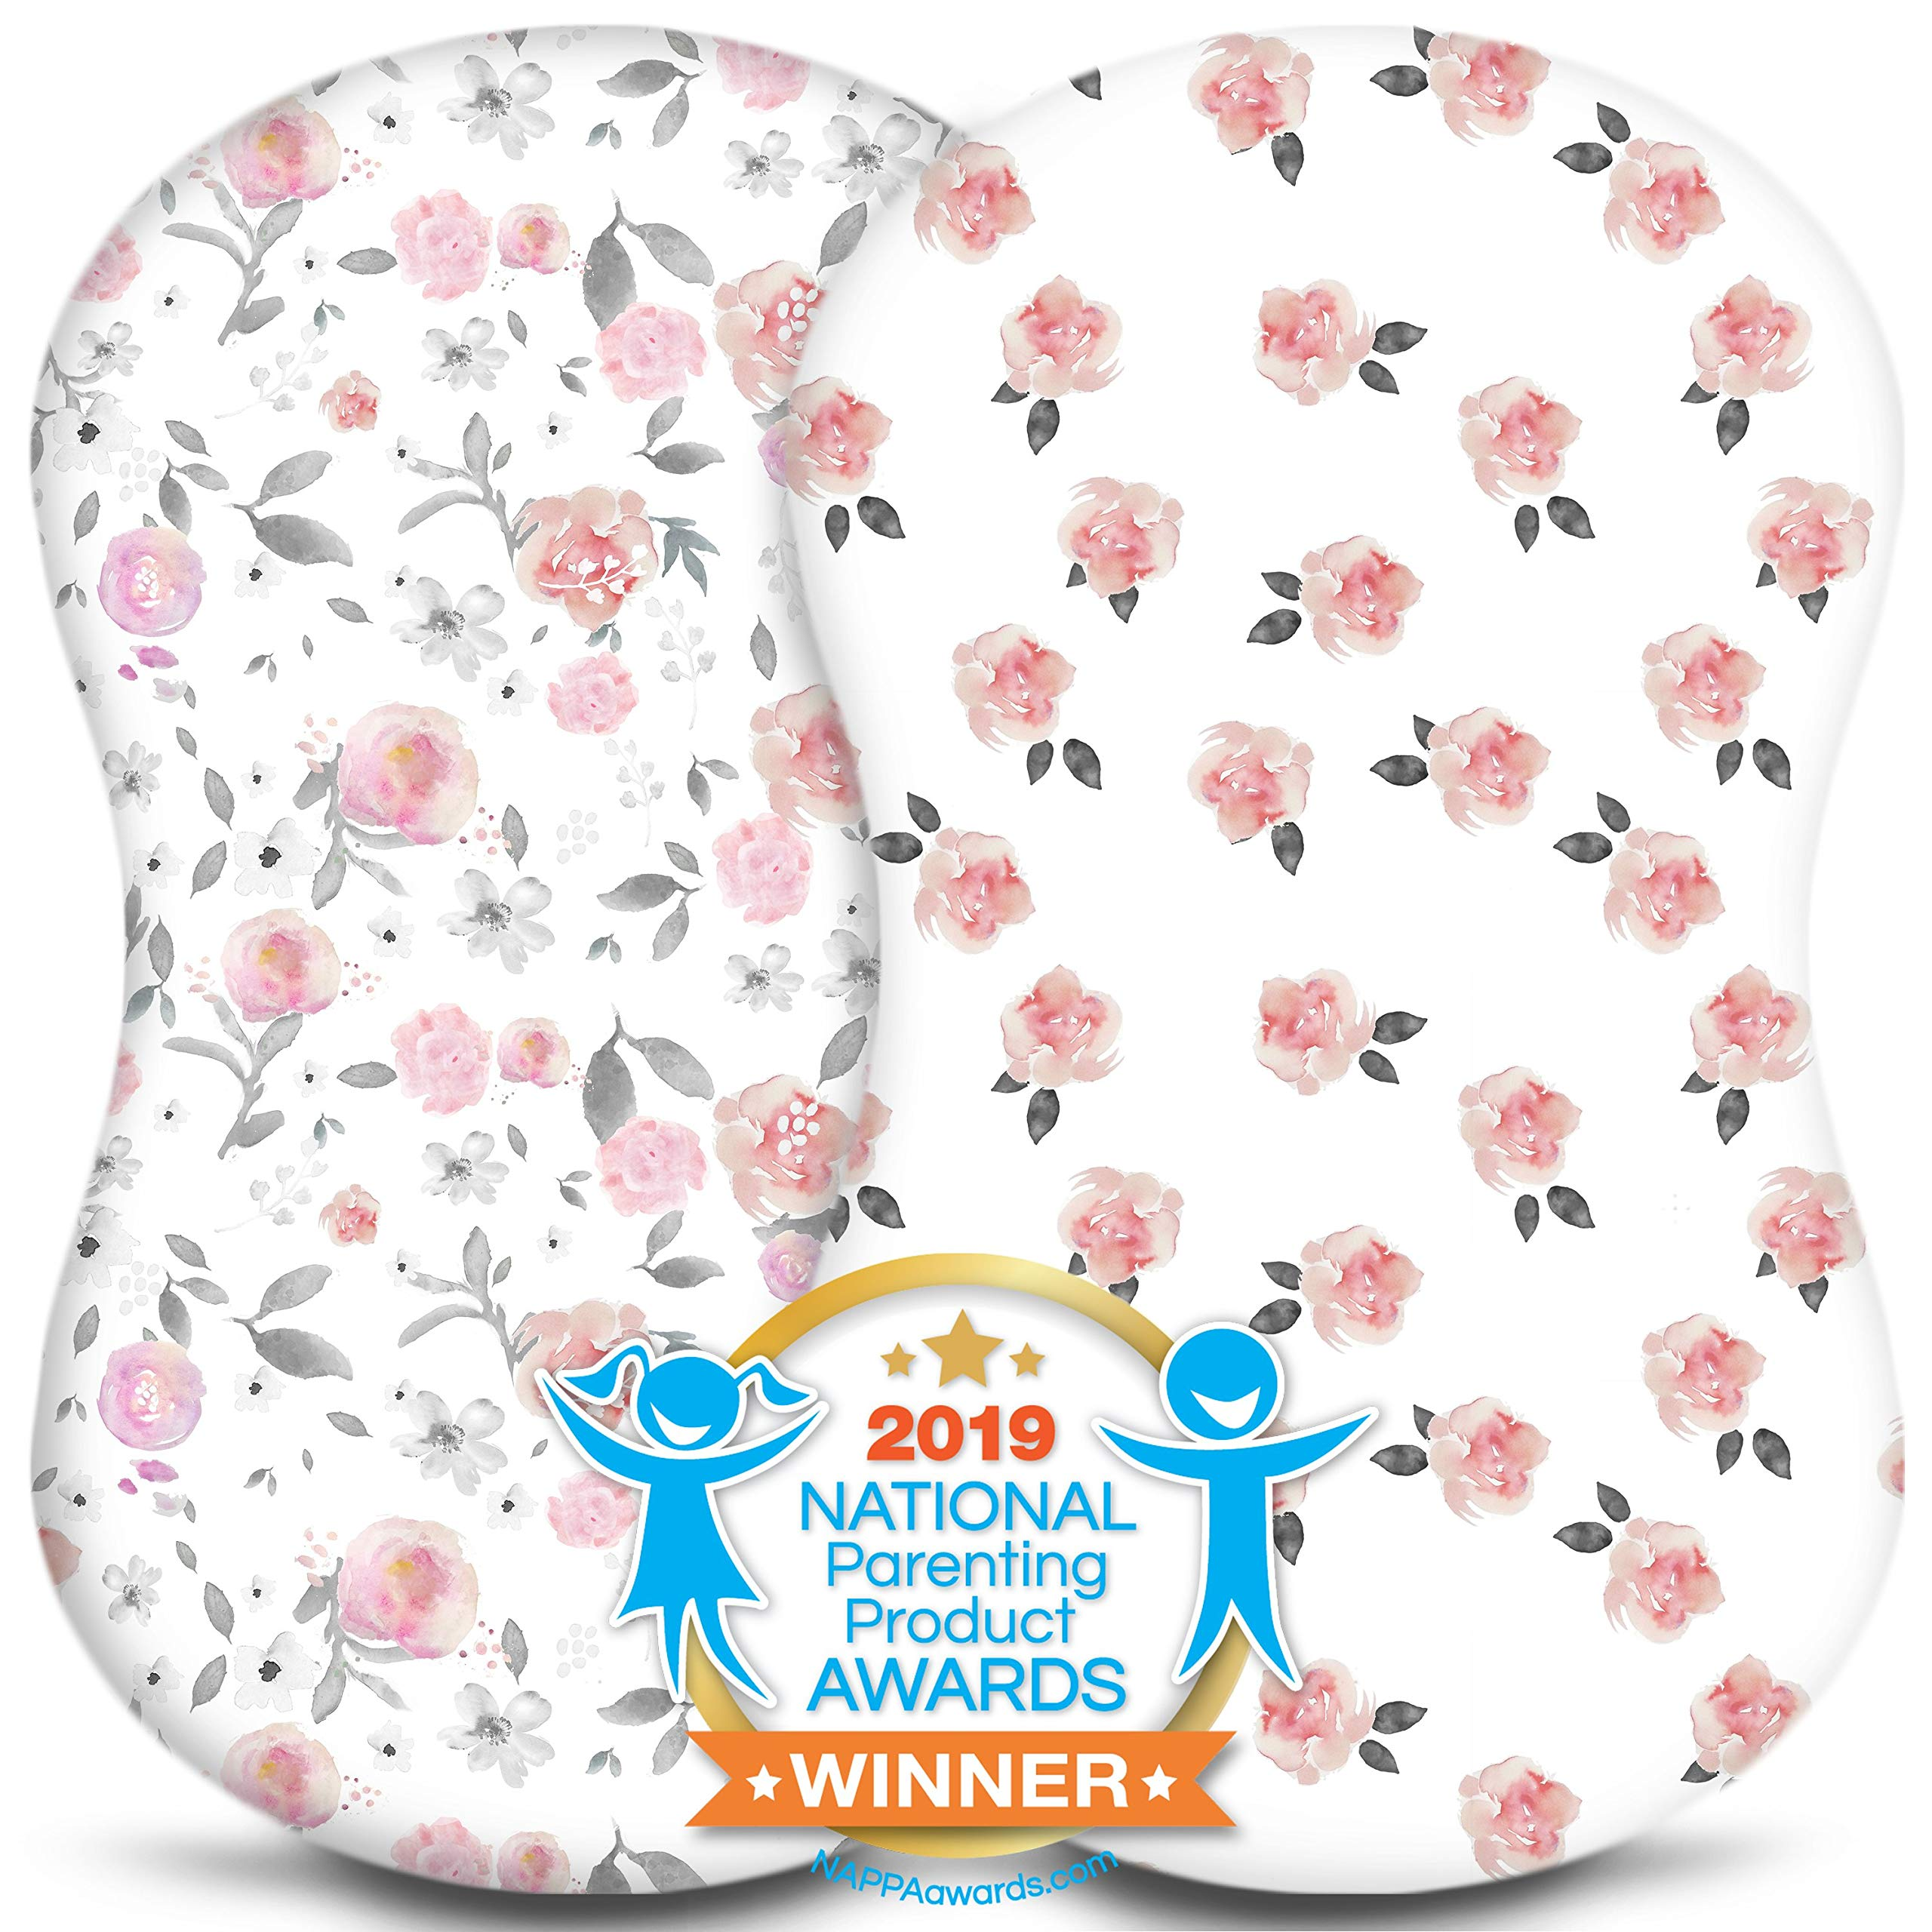 Bassinet Sheets - Fitted, Premium Jersey Cotton - Baby Bedside Sleeper Cover - Universal Sheet Set for Rectangle, Oval, or Hourglass Bassinet Mattress - White 2 Pack for a Girl - Petal